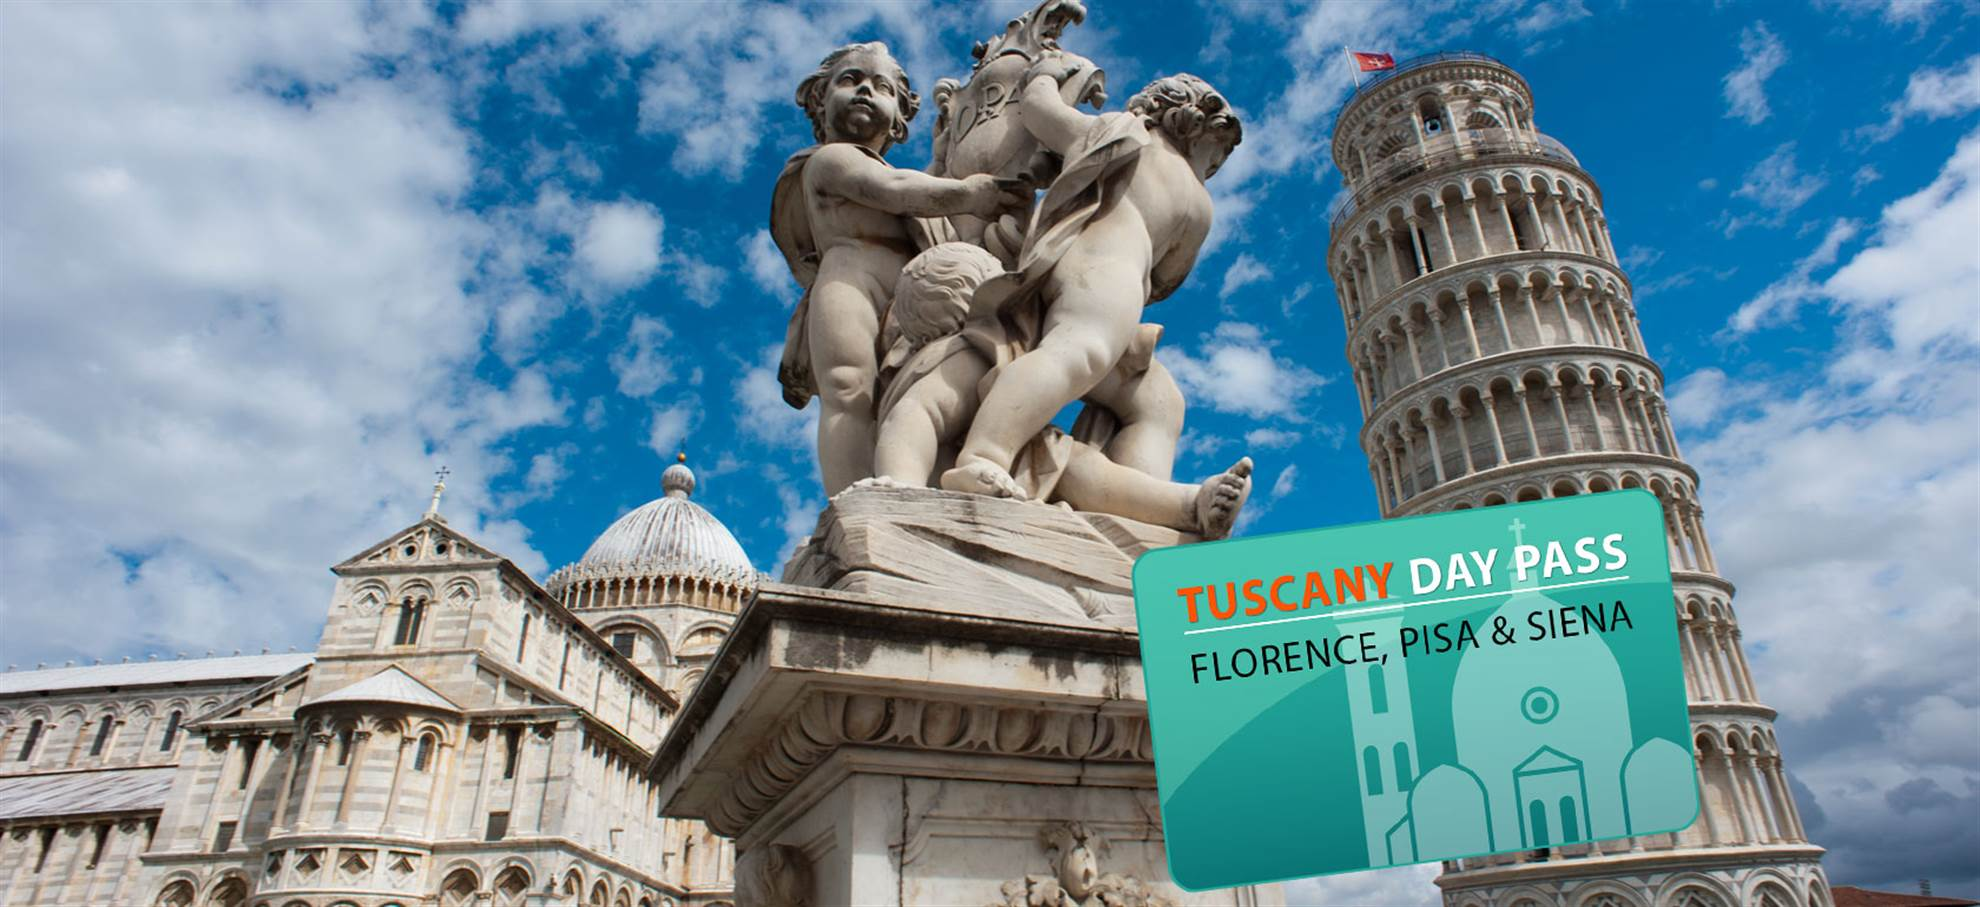 Tuscany Day Pass for Florence, Pisa or Siena